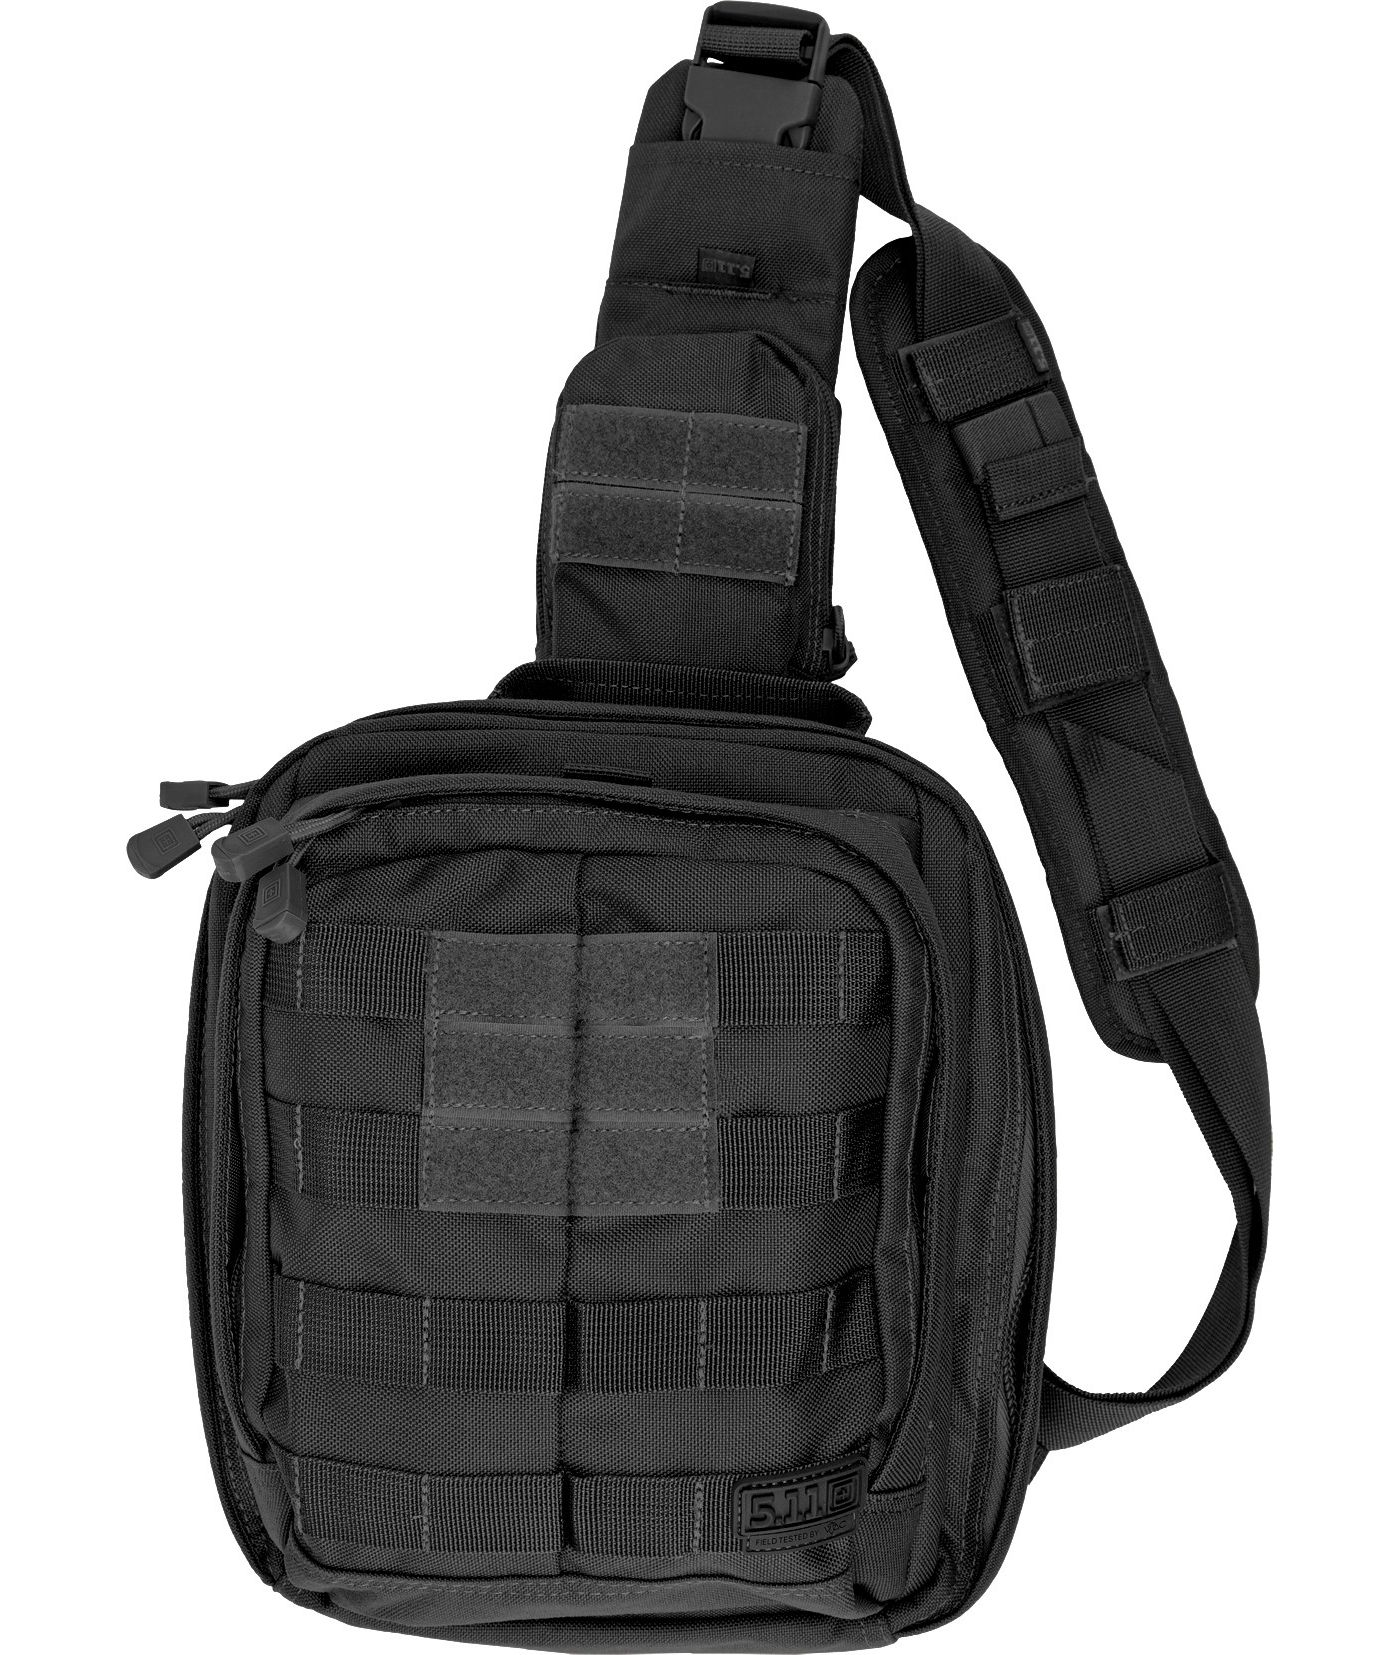 5.11 Tactical Rush Moab 6 Bag